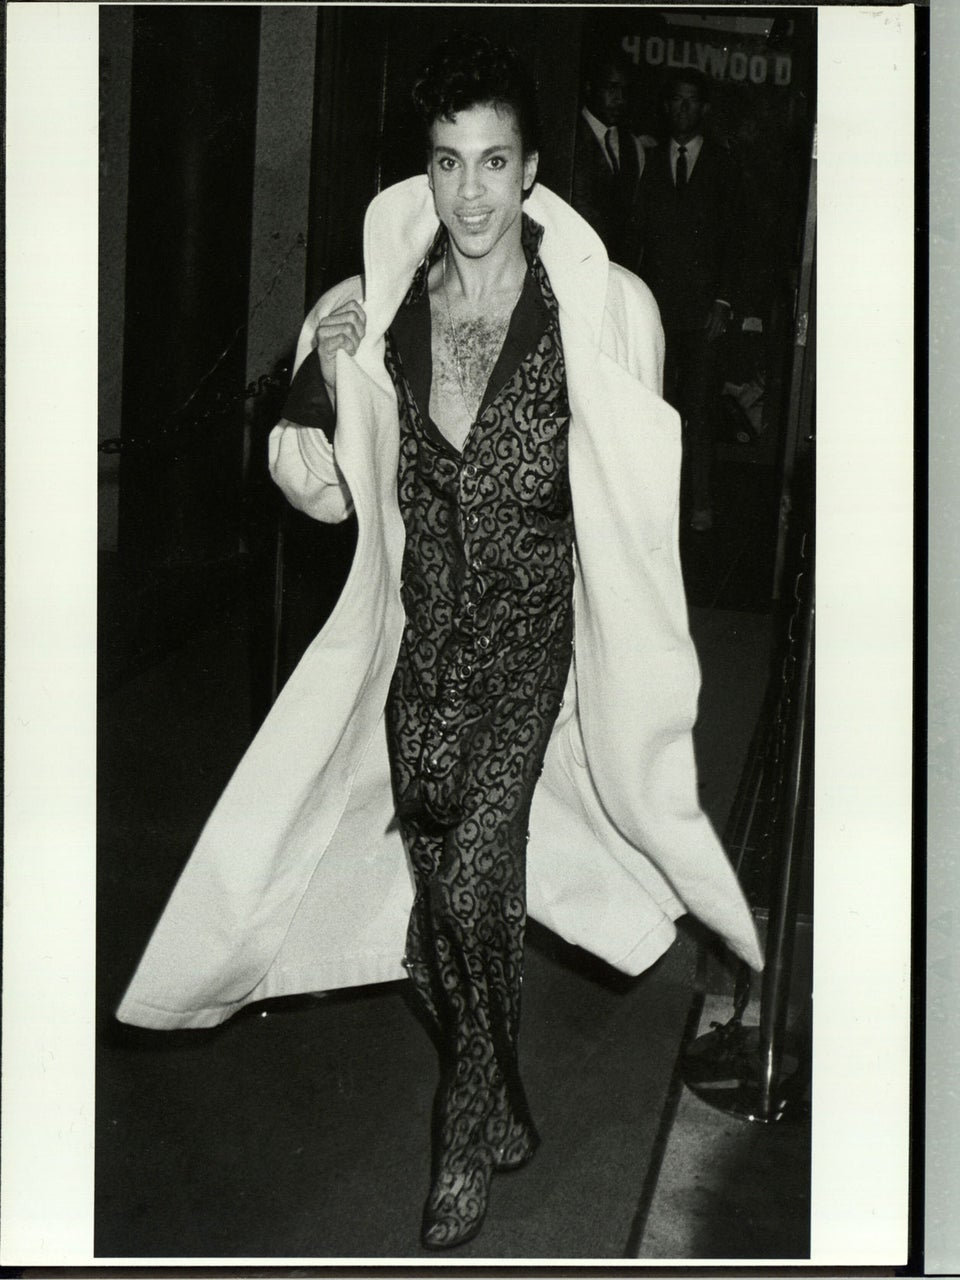 Remembering Prince's Reign as a True Fashion Icon